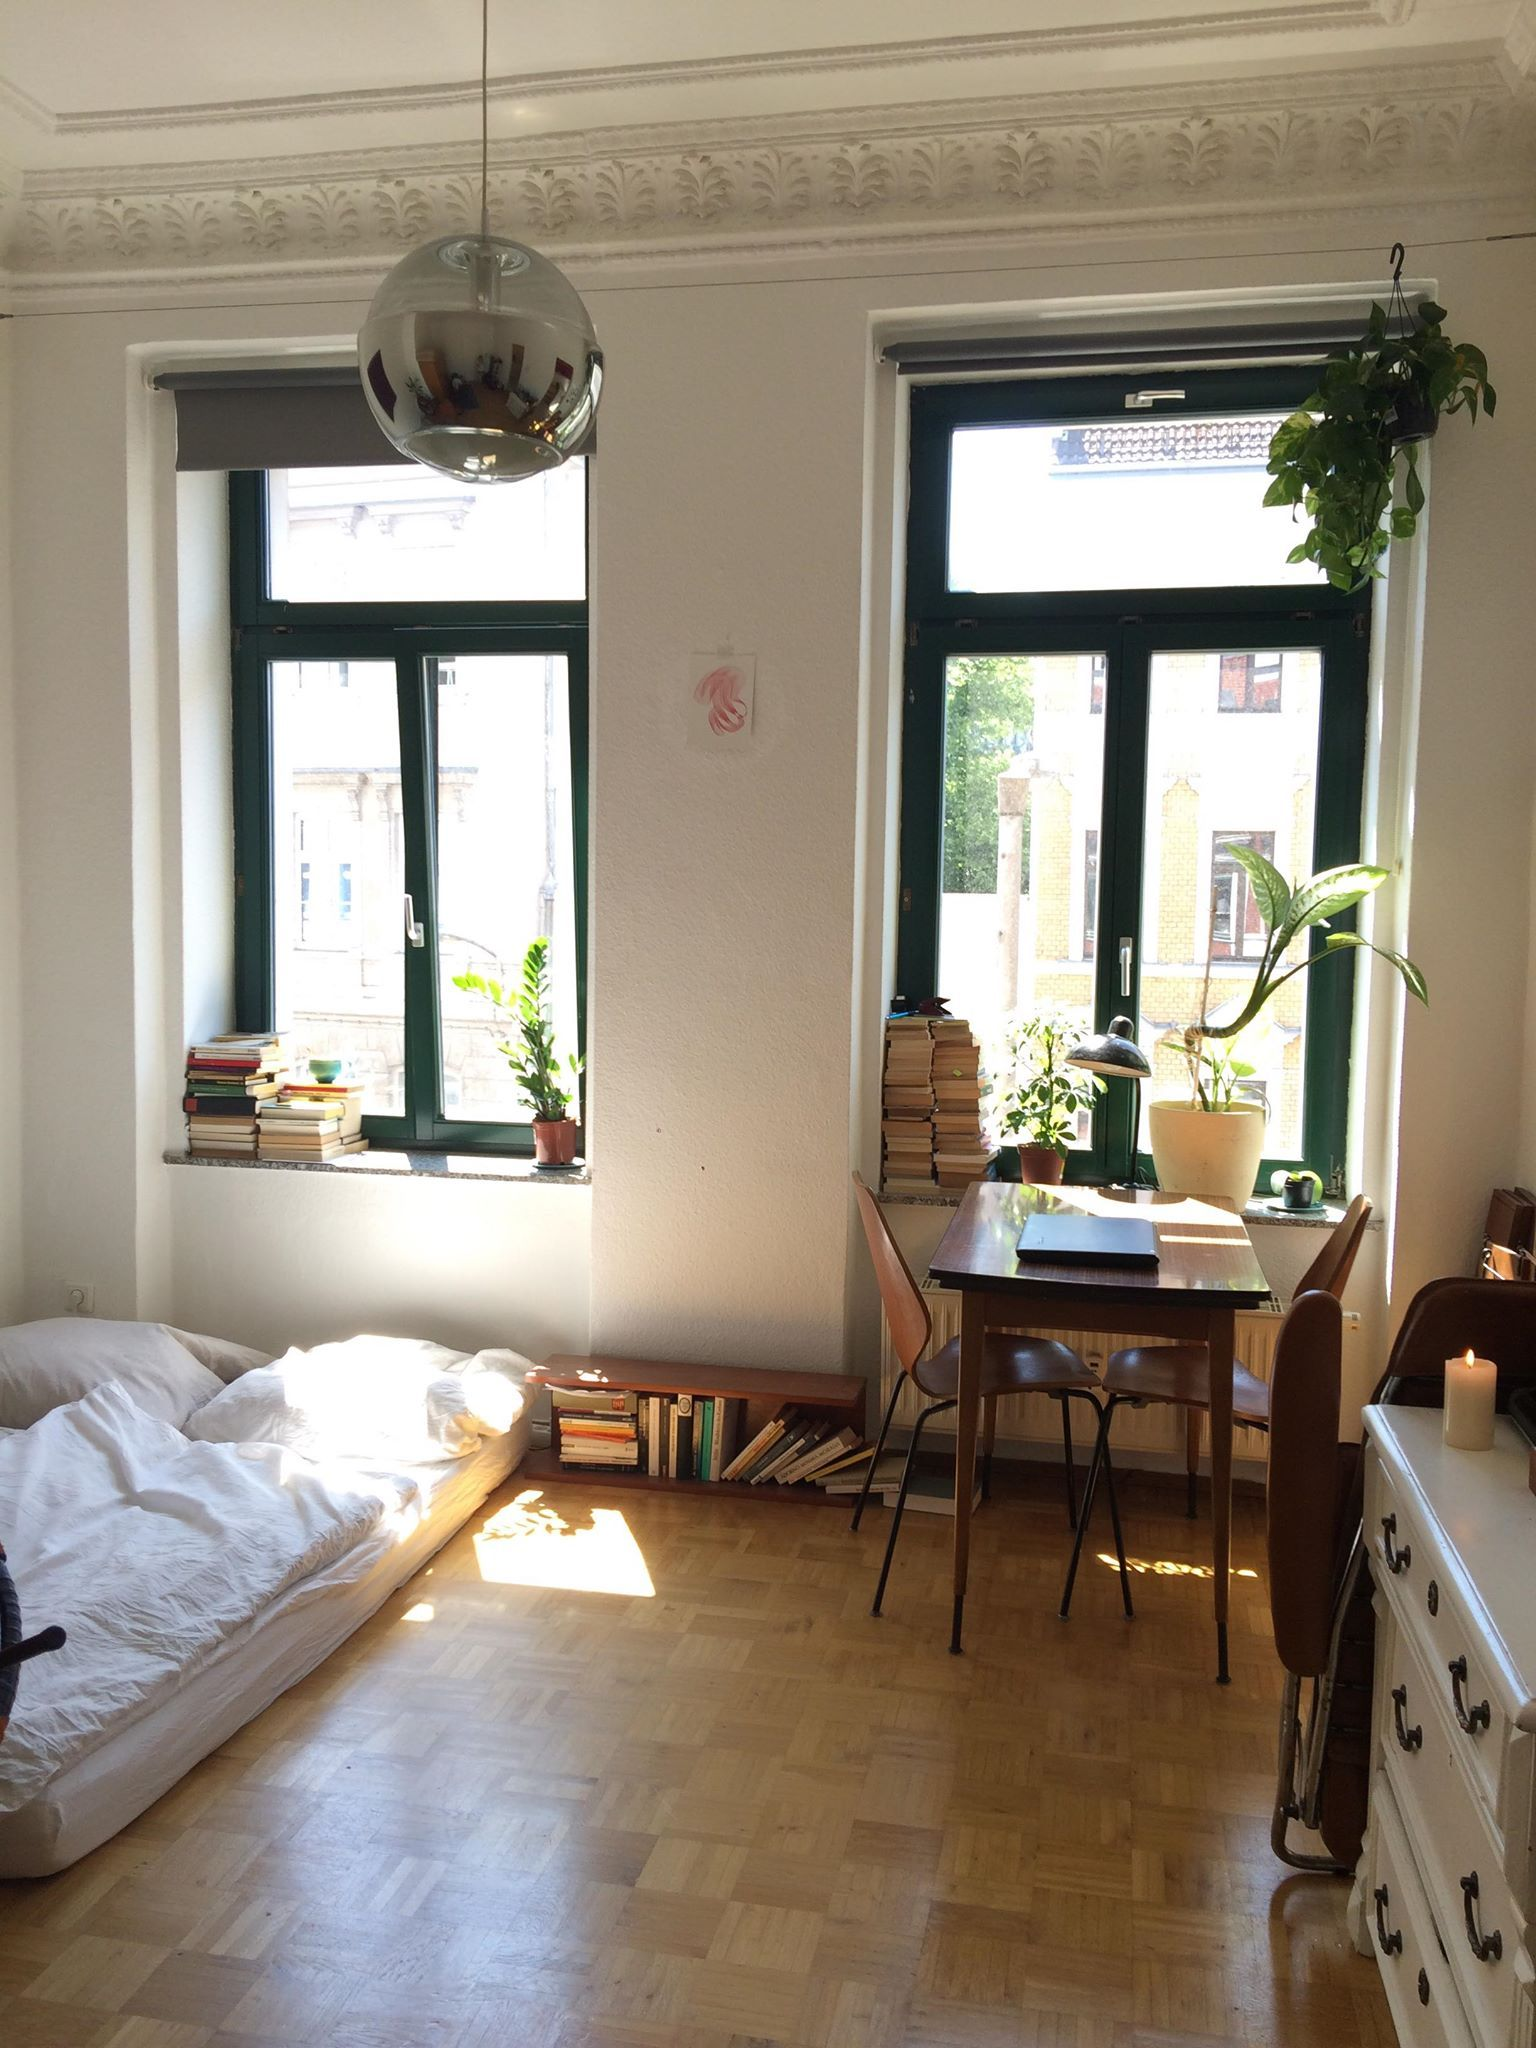 my mini apartment - just moved in (Leipzig, Germany)